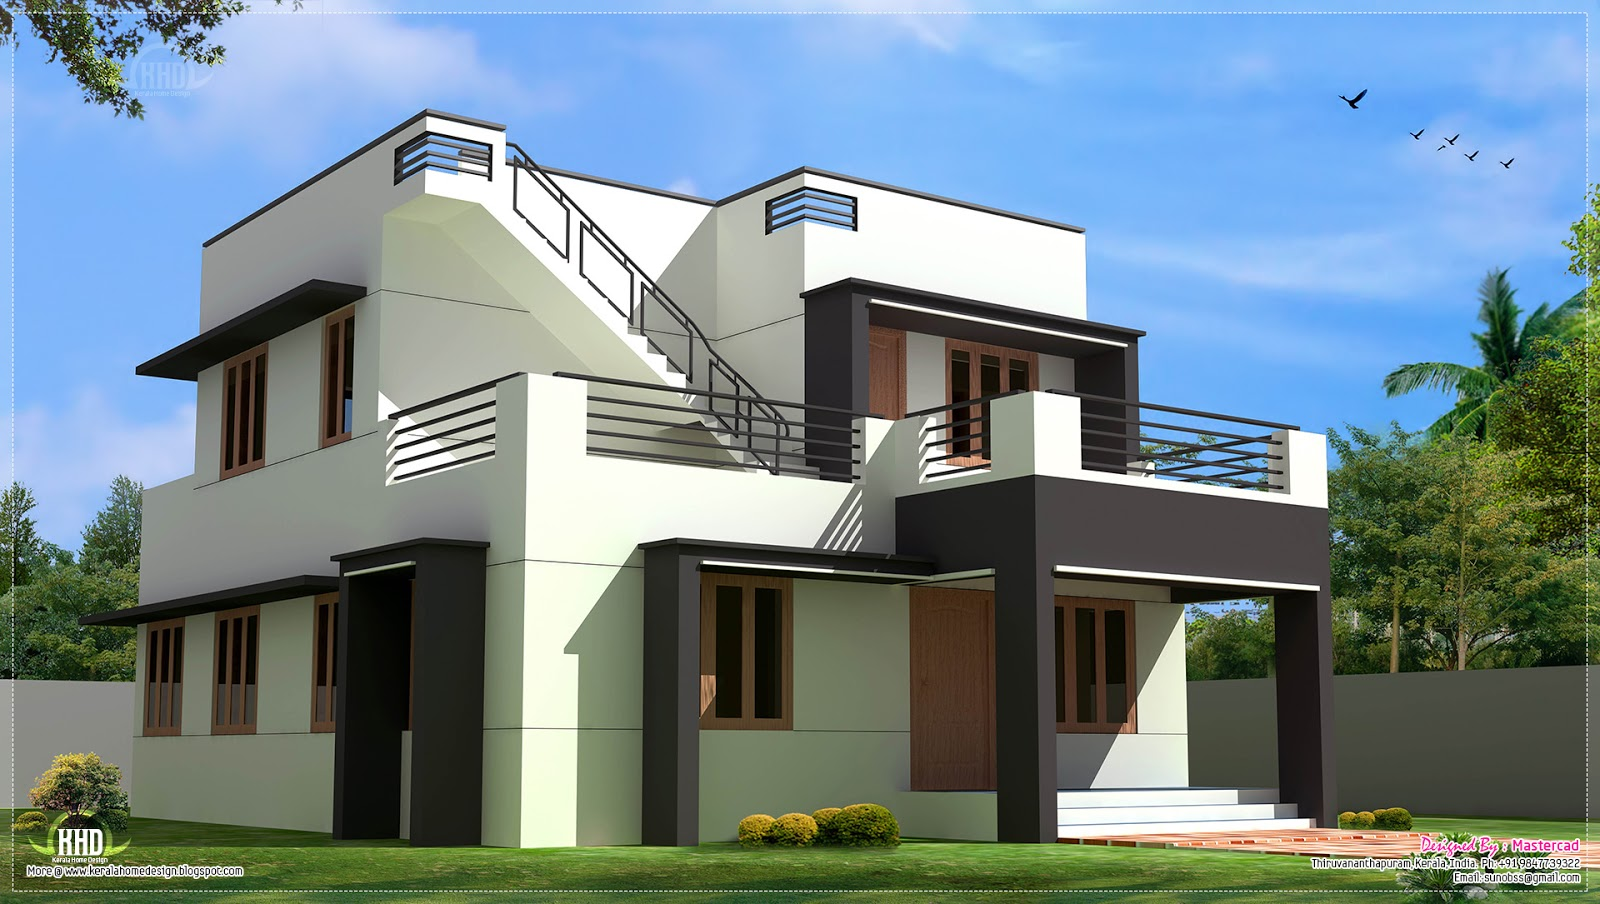 Home remodeling design modern villa design home design for Best modern house plans